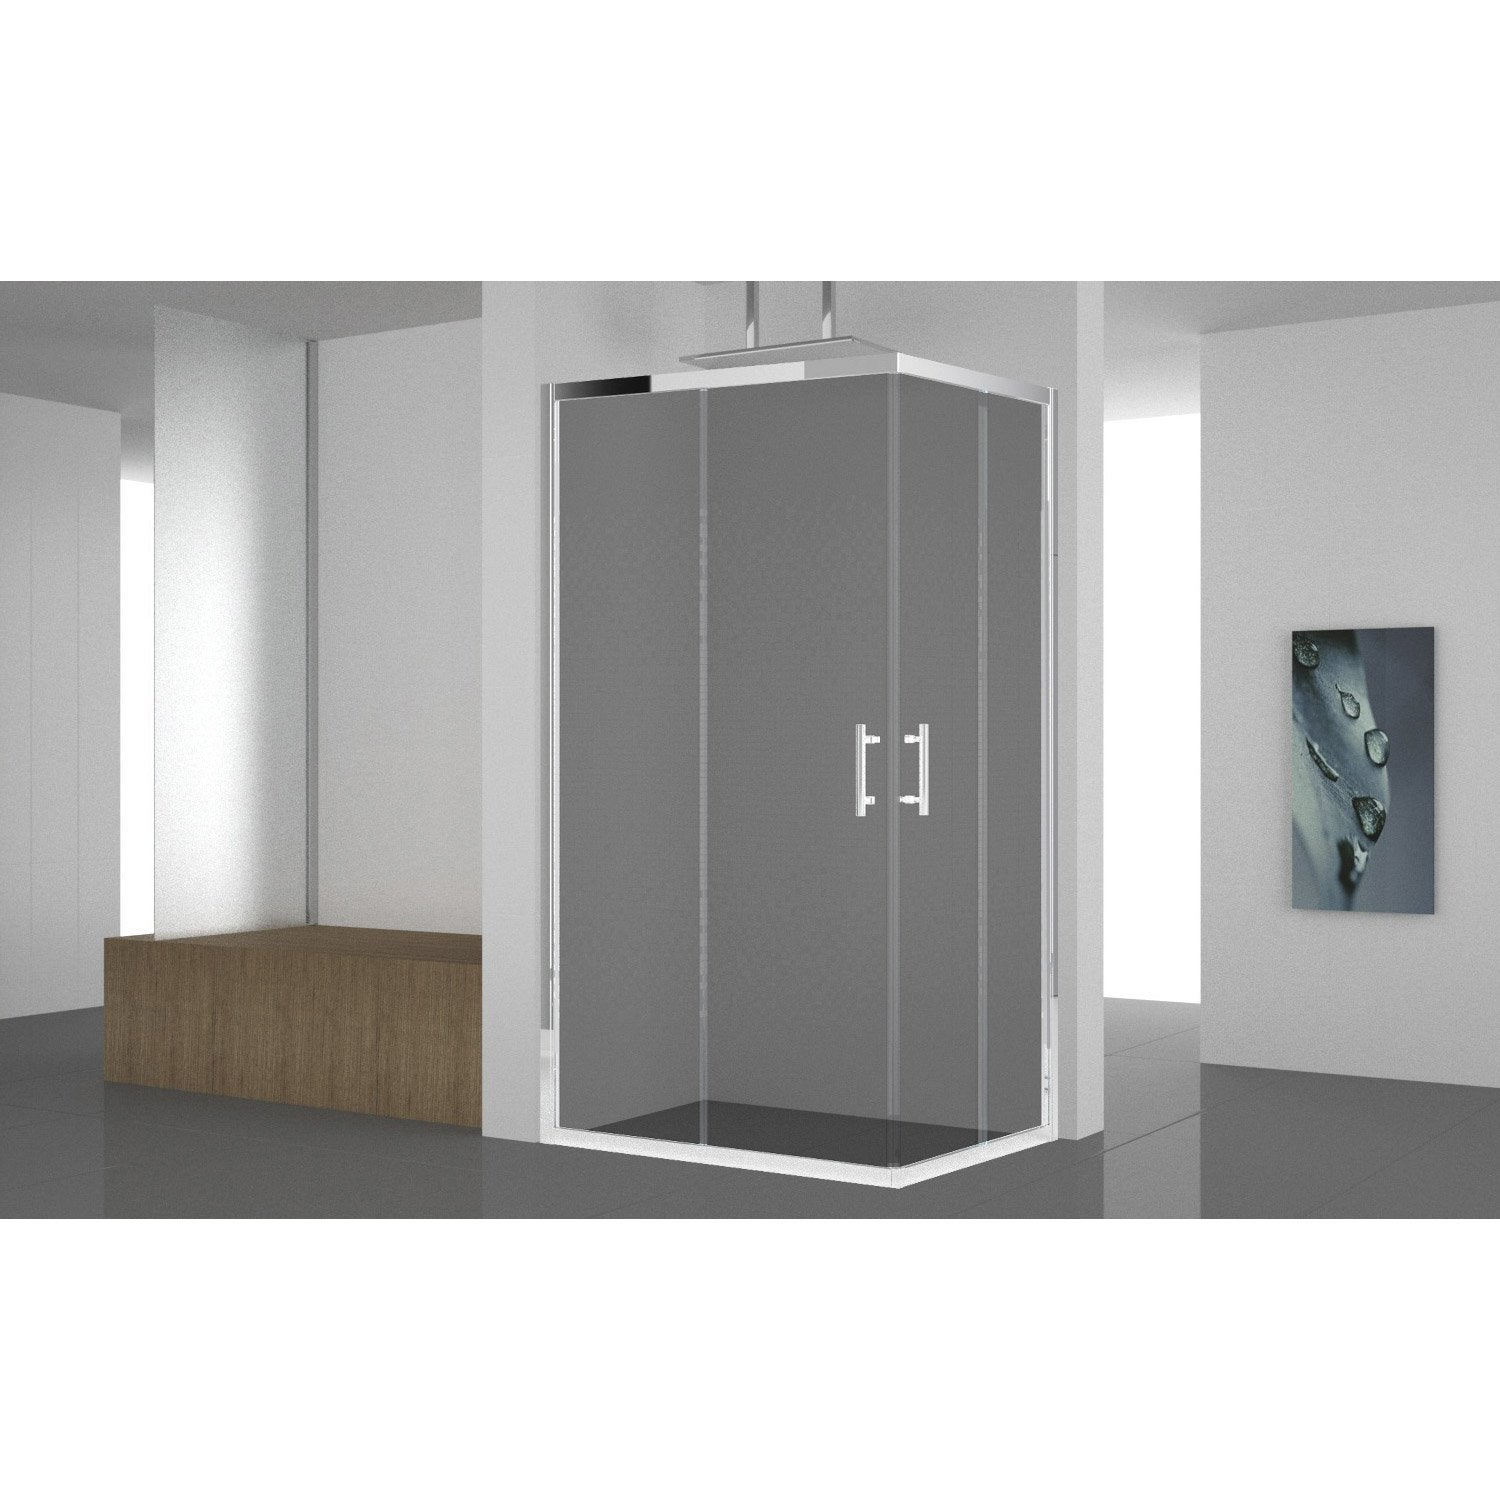 Porte de douche coulissante angle rectangle x cm chrom elyt - Porte coulissante douche 100 ...